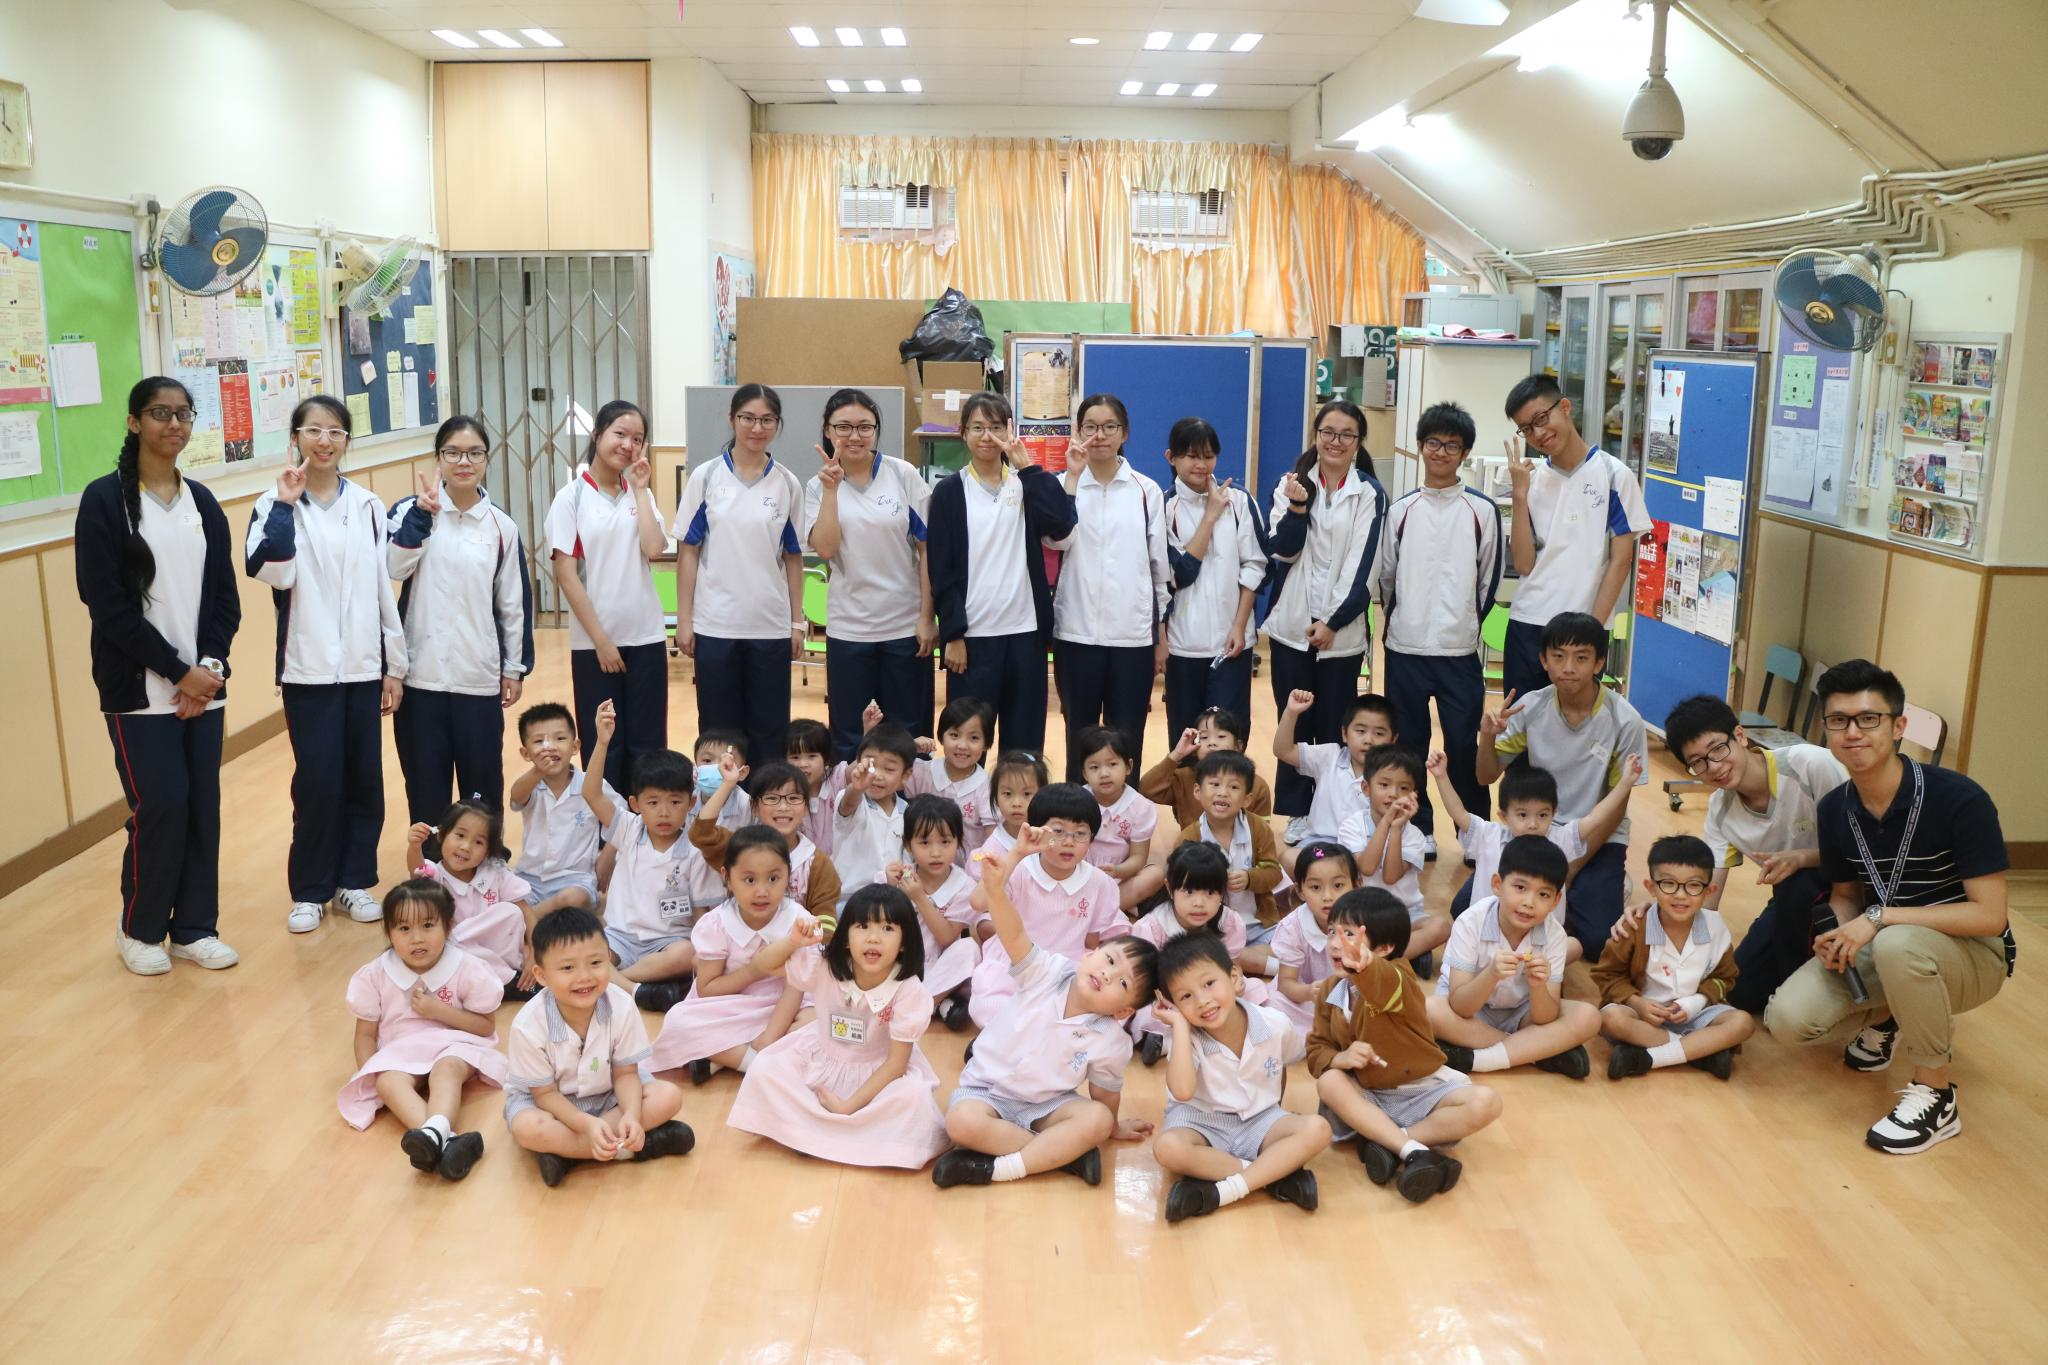 Our students brought happiness to the children in kindergarten.